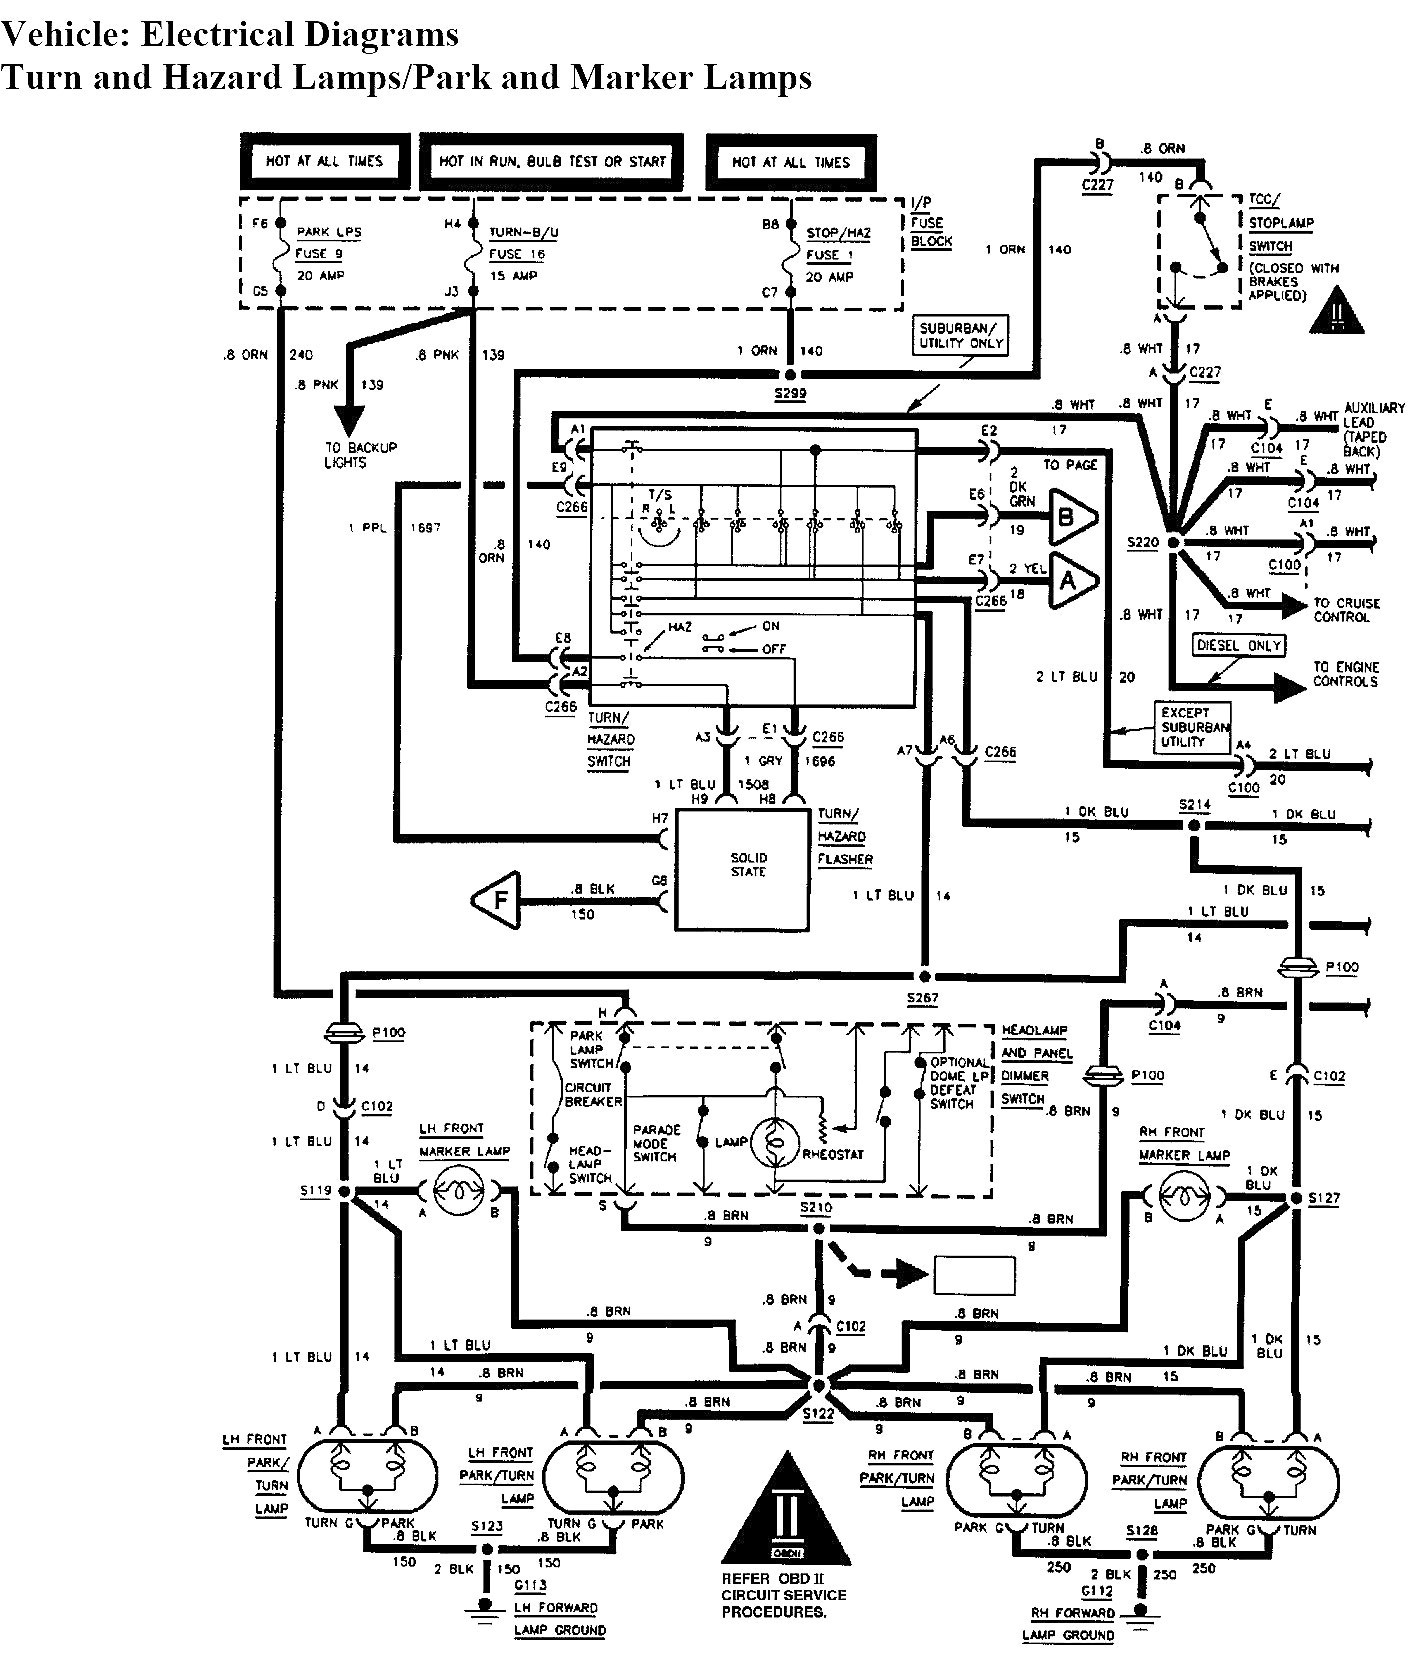 Chevy Silverado Tail Light Wiring Diagram Beautiful